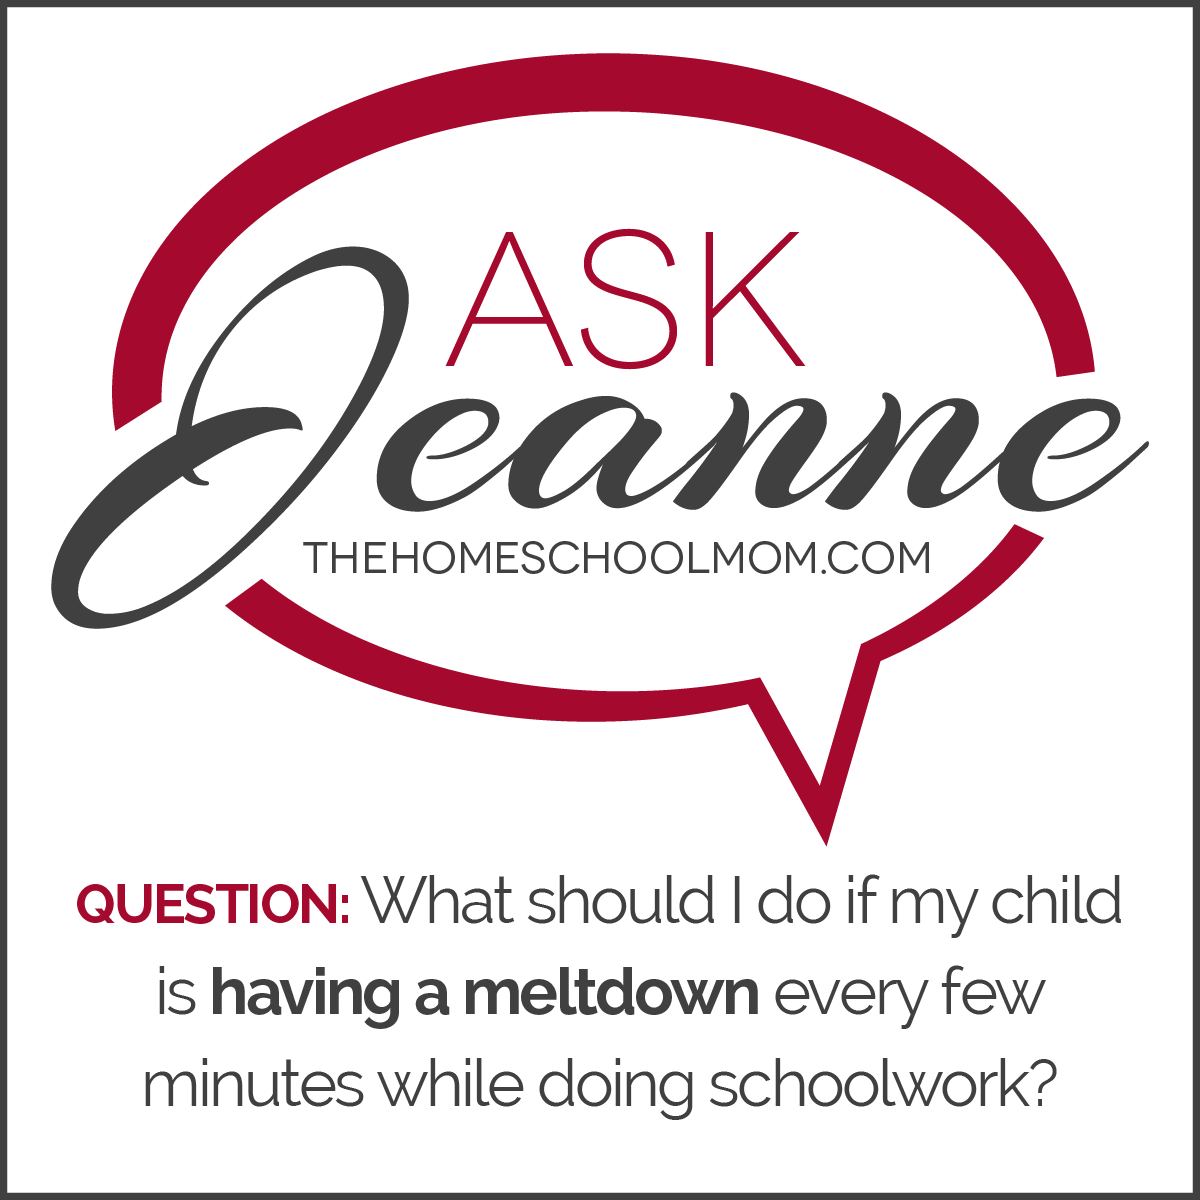 Ask Jeanne: What should I do if my child is having a meltdown every few minutes while doing schoolwork?